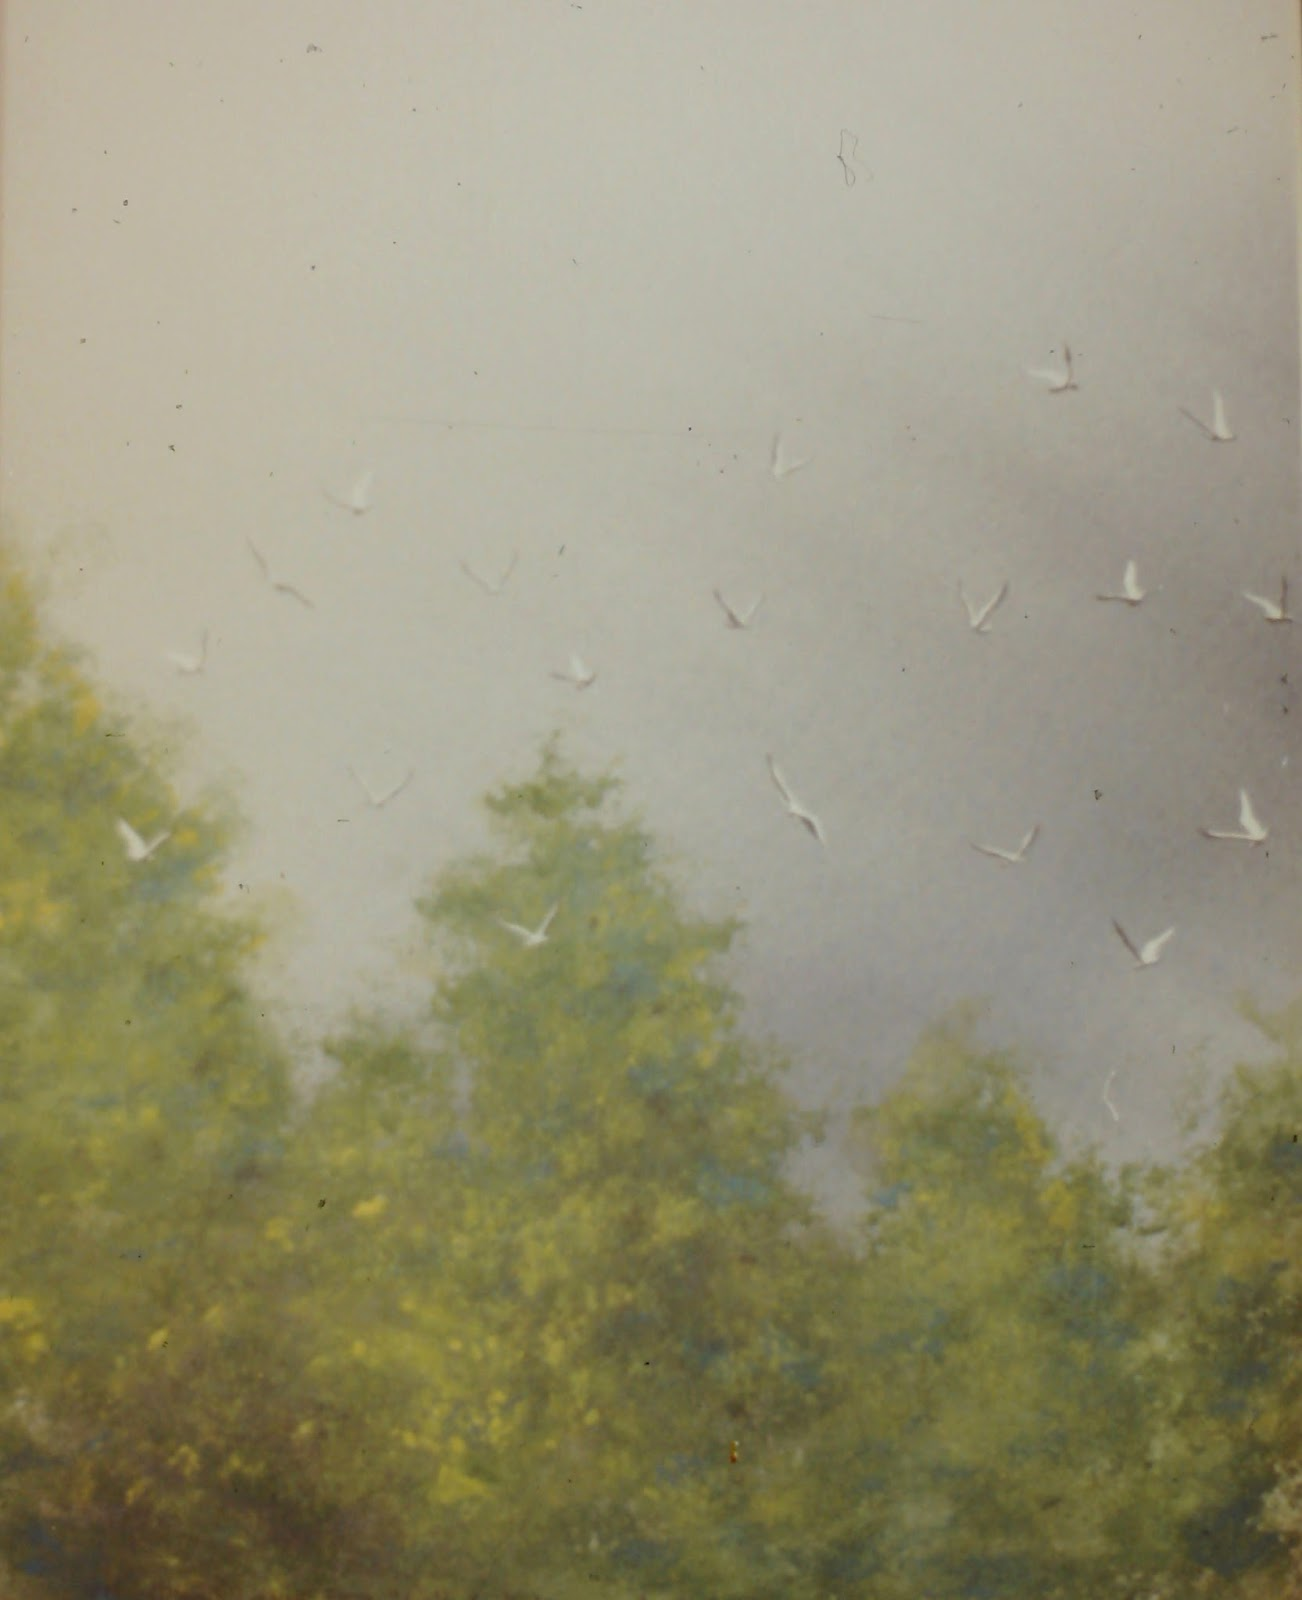 Seagulls Following the Plow, near Edzell, Angus, Scotland  40x32 inches. Watercolor on paper, c. 1992.  In a private collection in Boise, Idaho by Lenny Campello